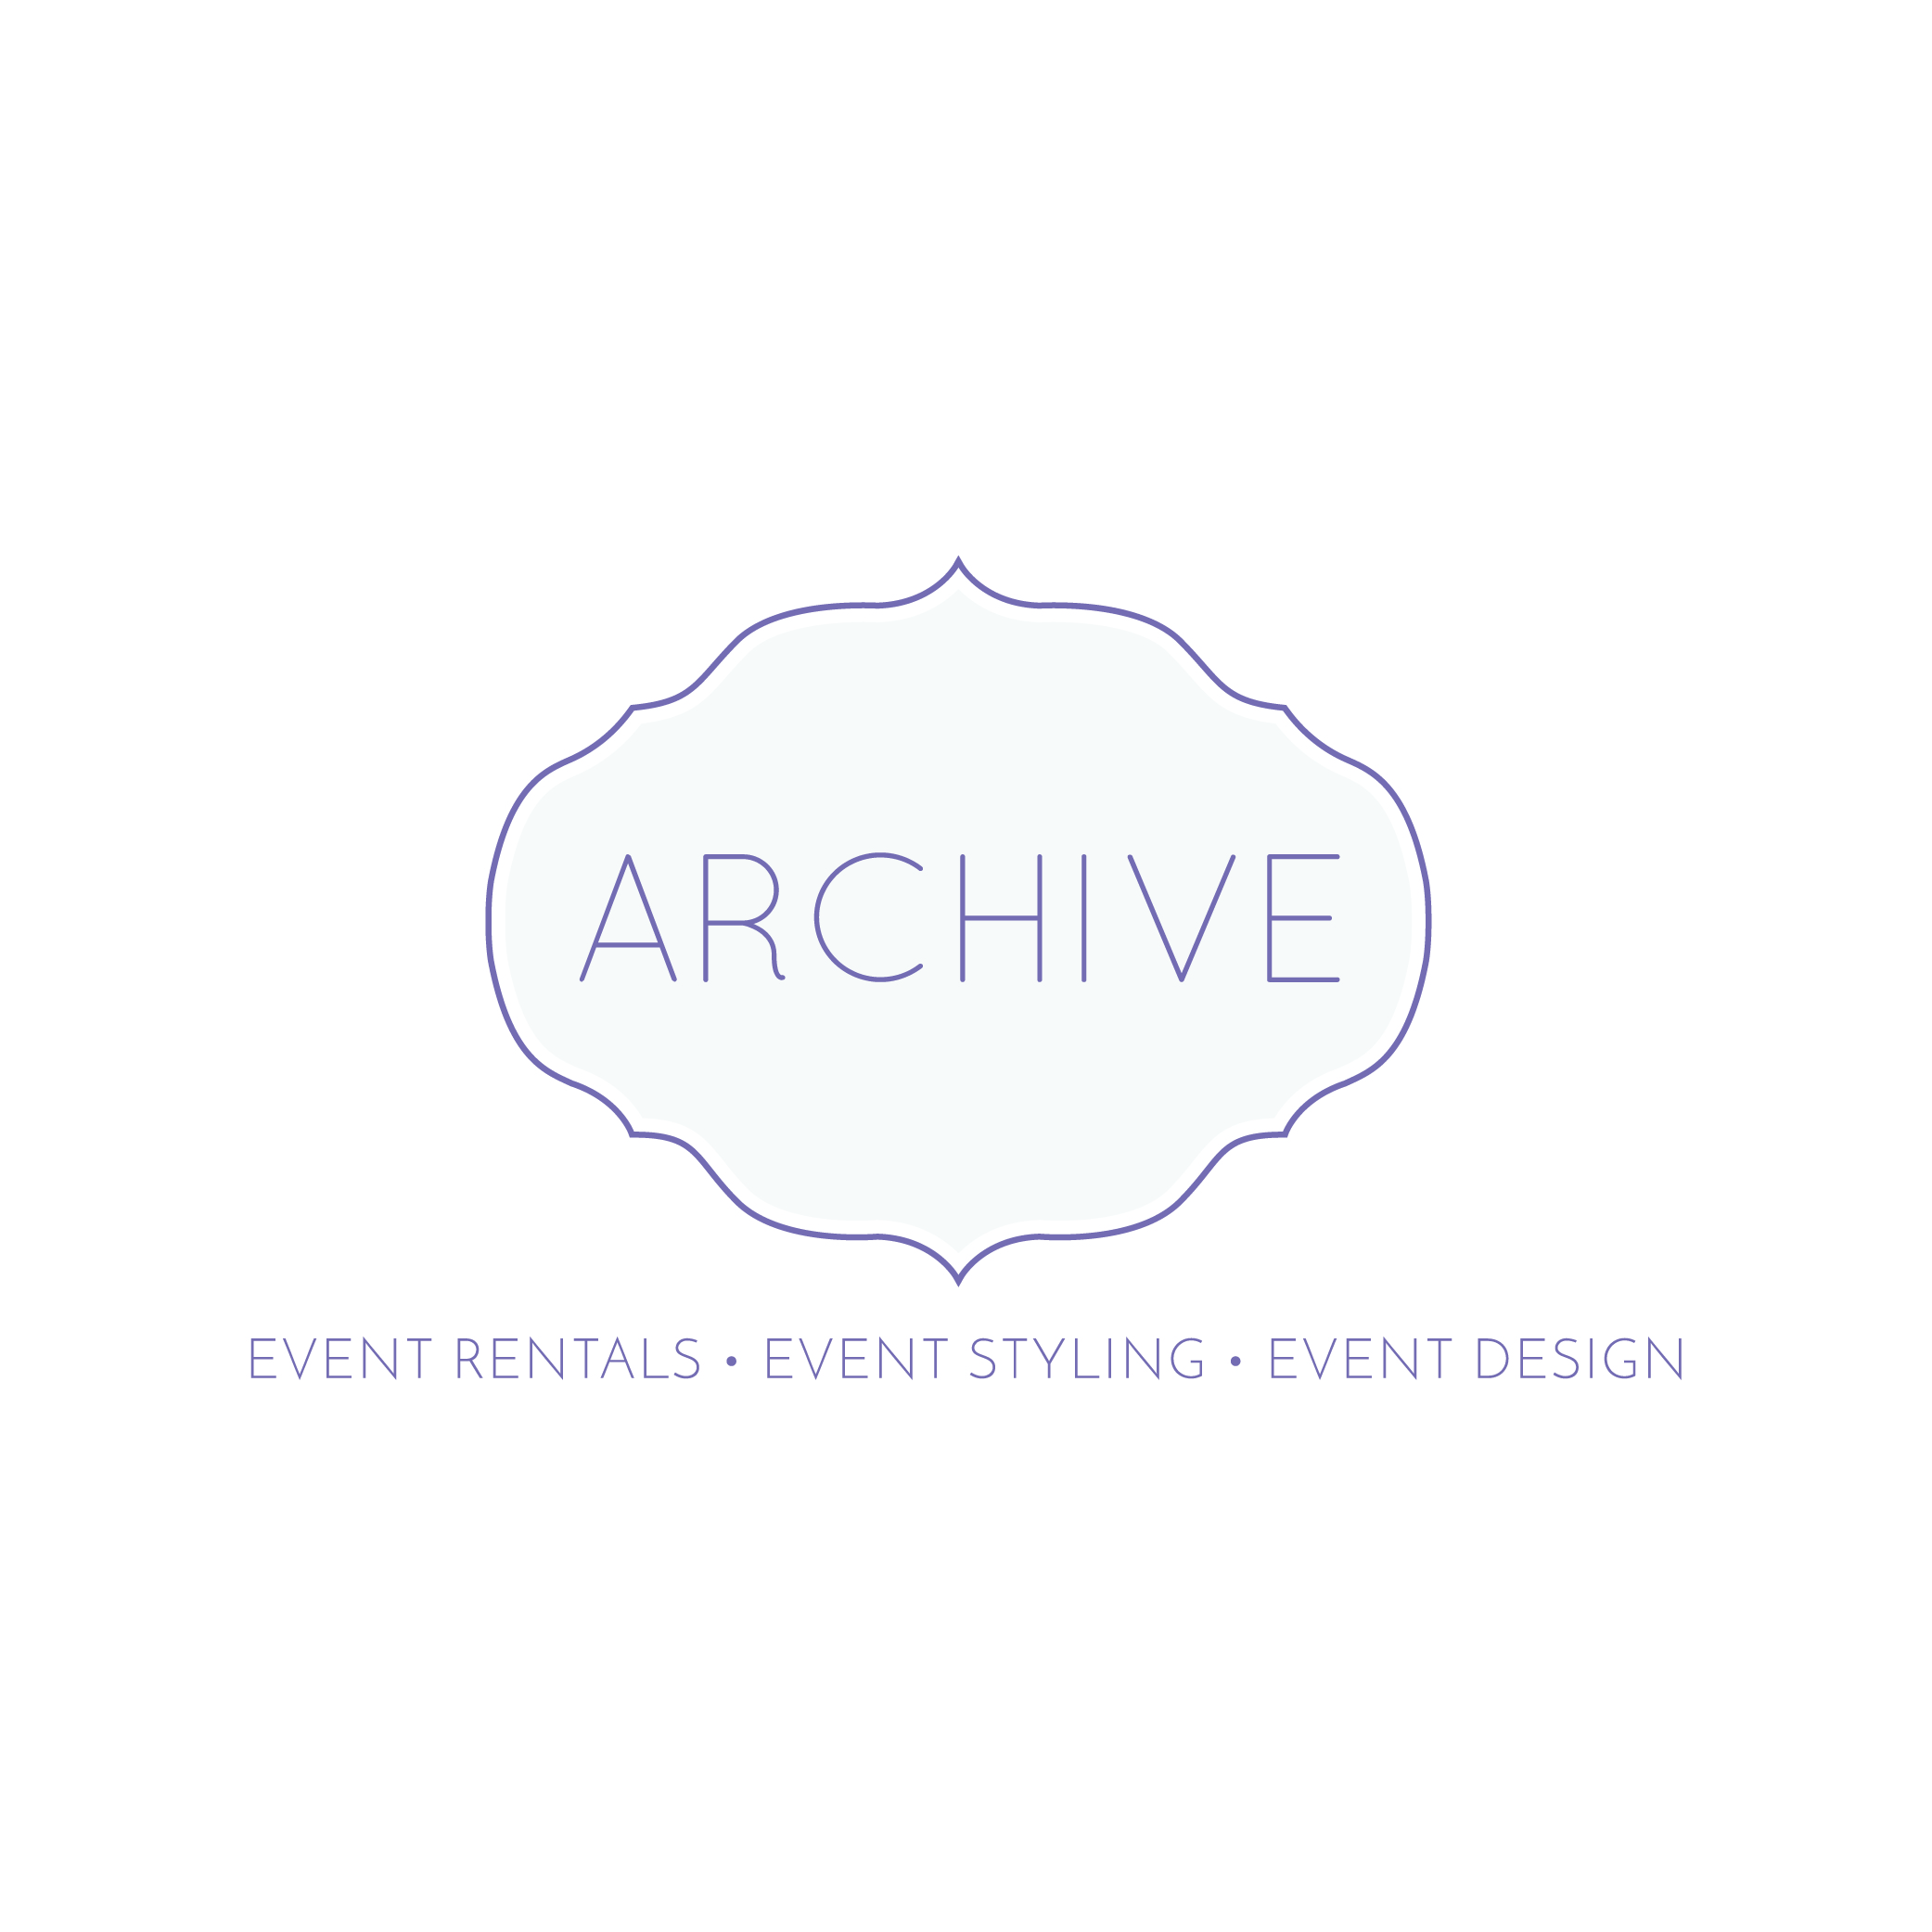 ARCHIVE-logo-Full Text (1).jpg